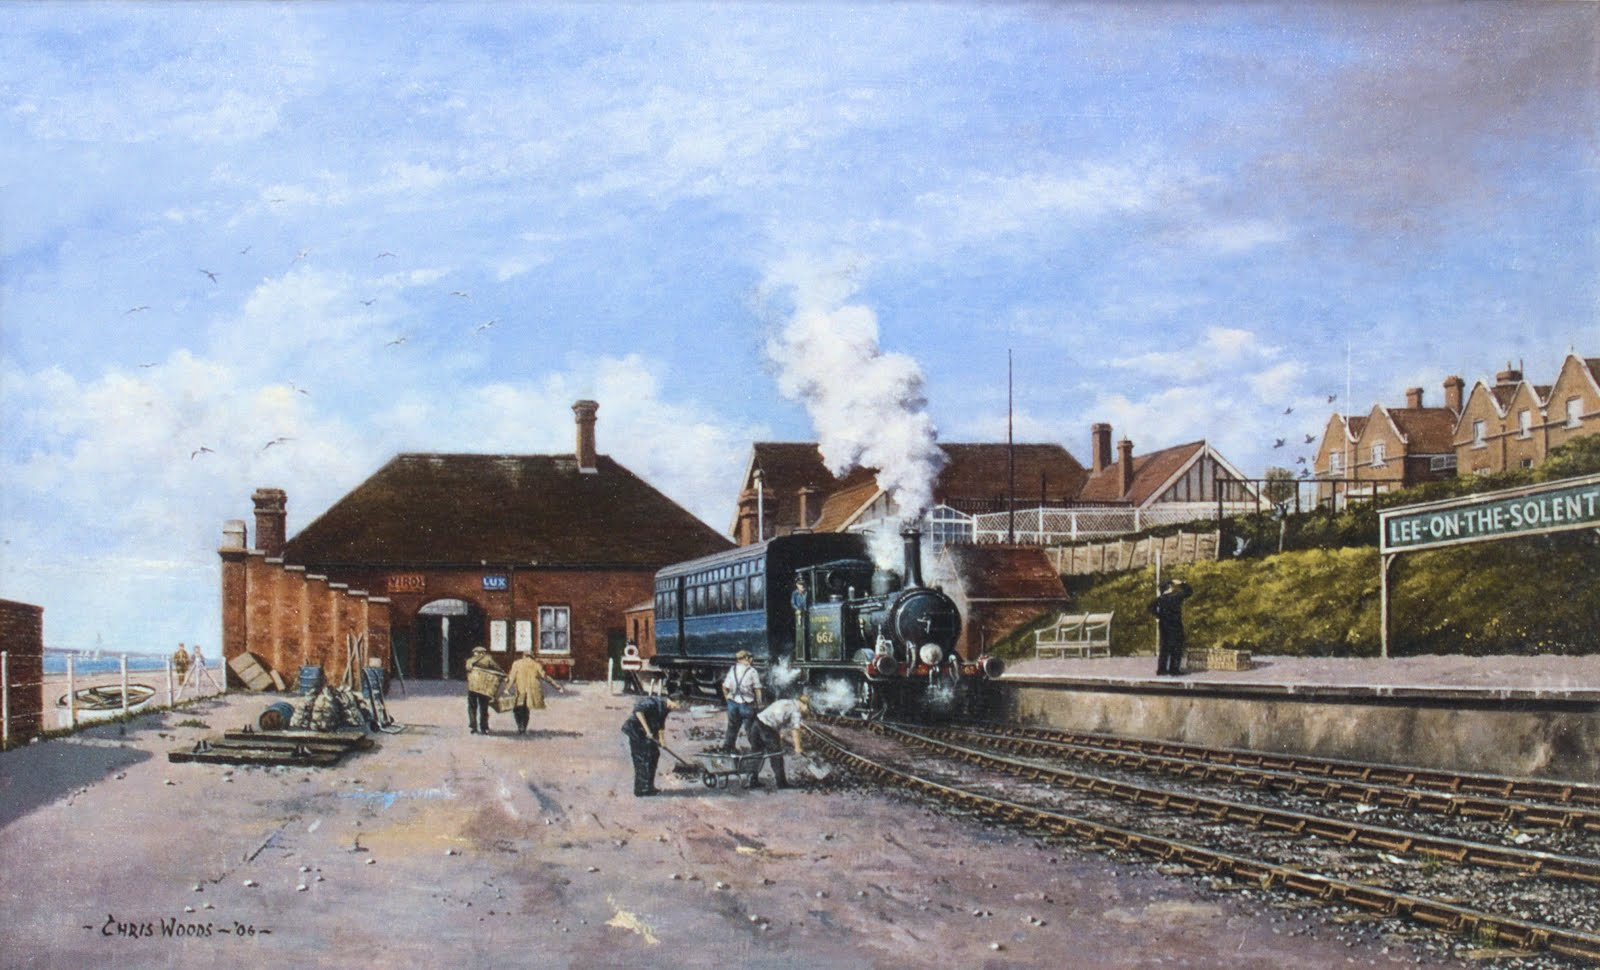 Painting of Lee on Solent